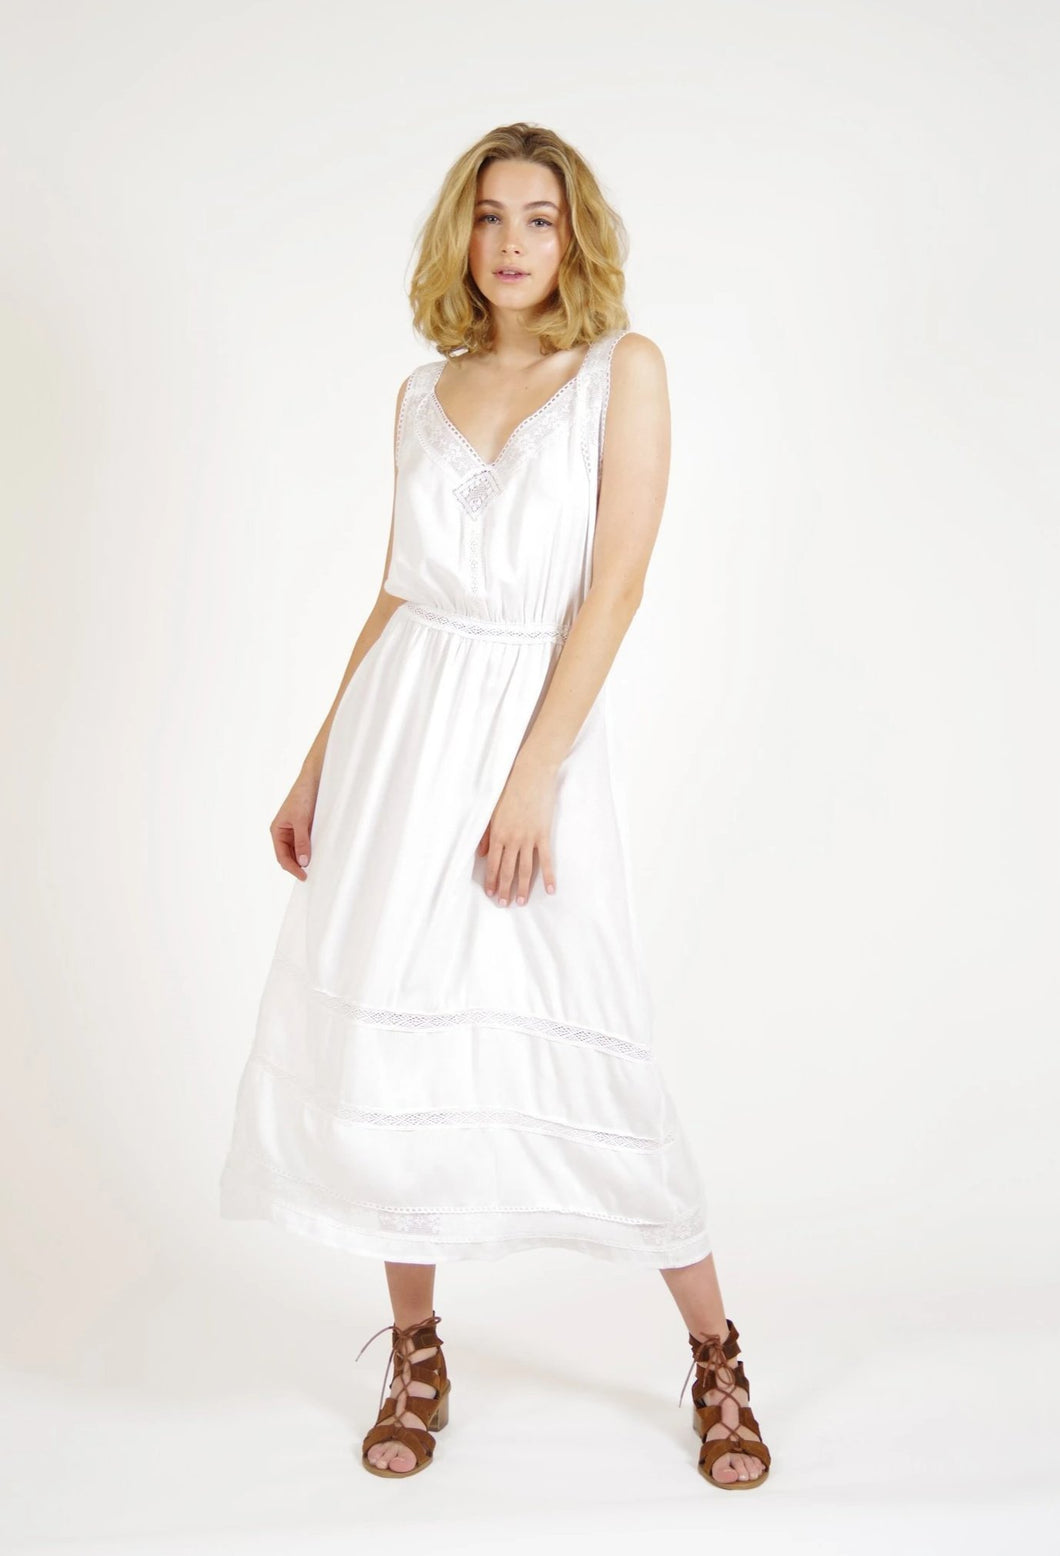 lace, white dress, online, fashion, buy, vintage inspired, melbourne